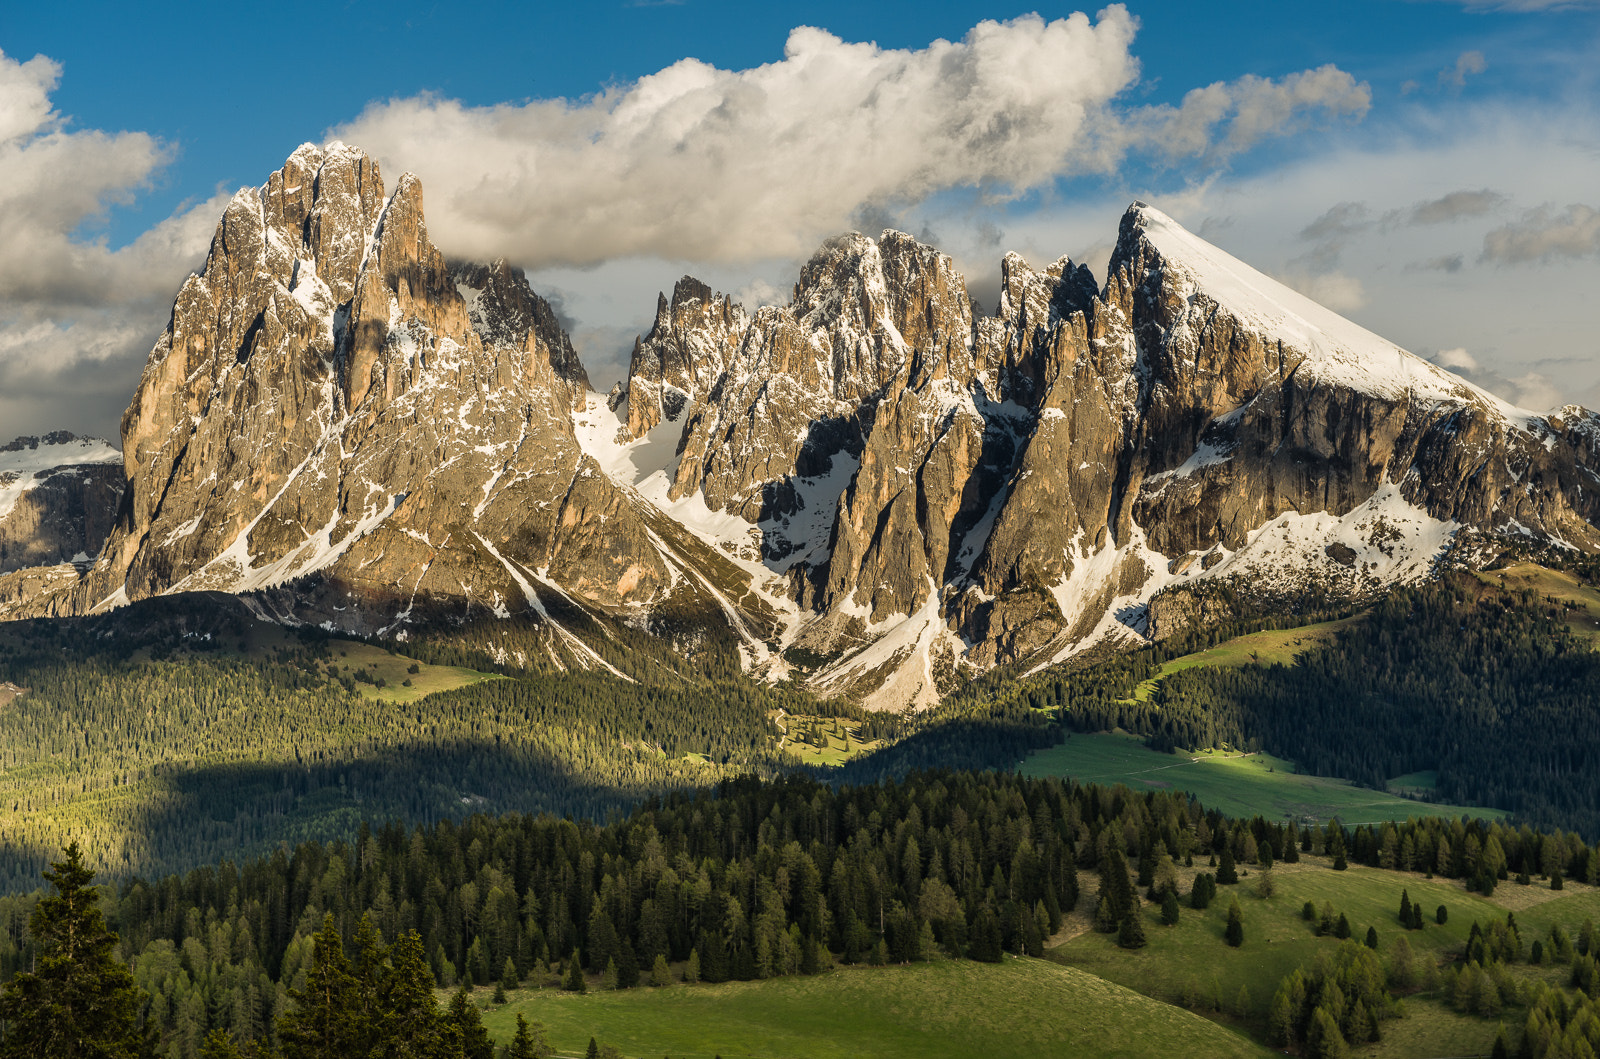 Photograph Majestic mountains in the light by Hans Kruse on 500px